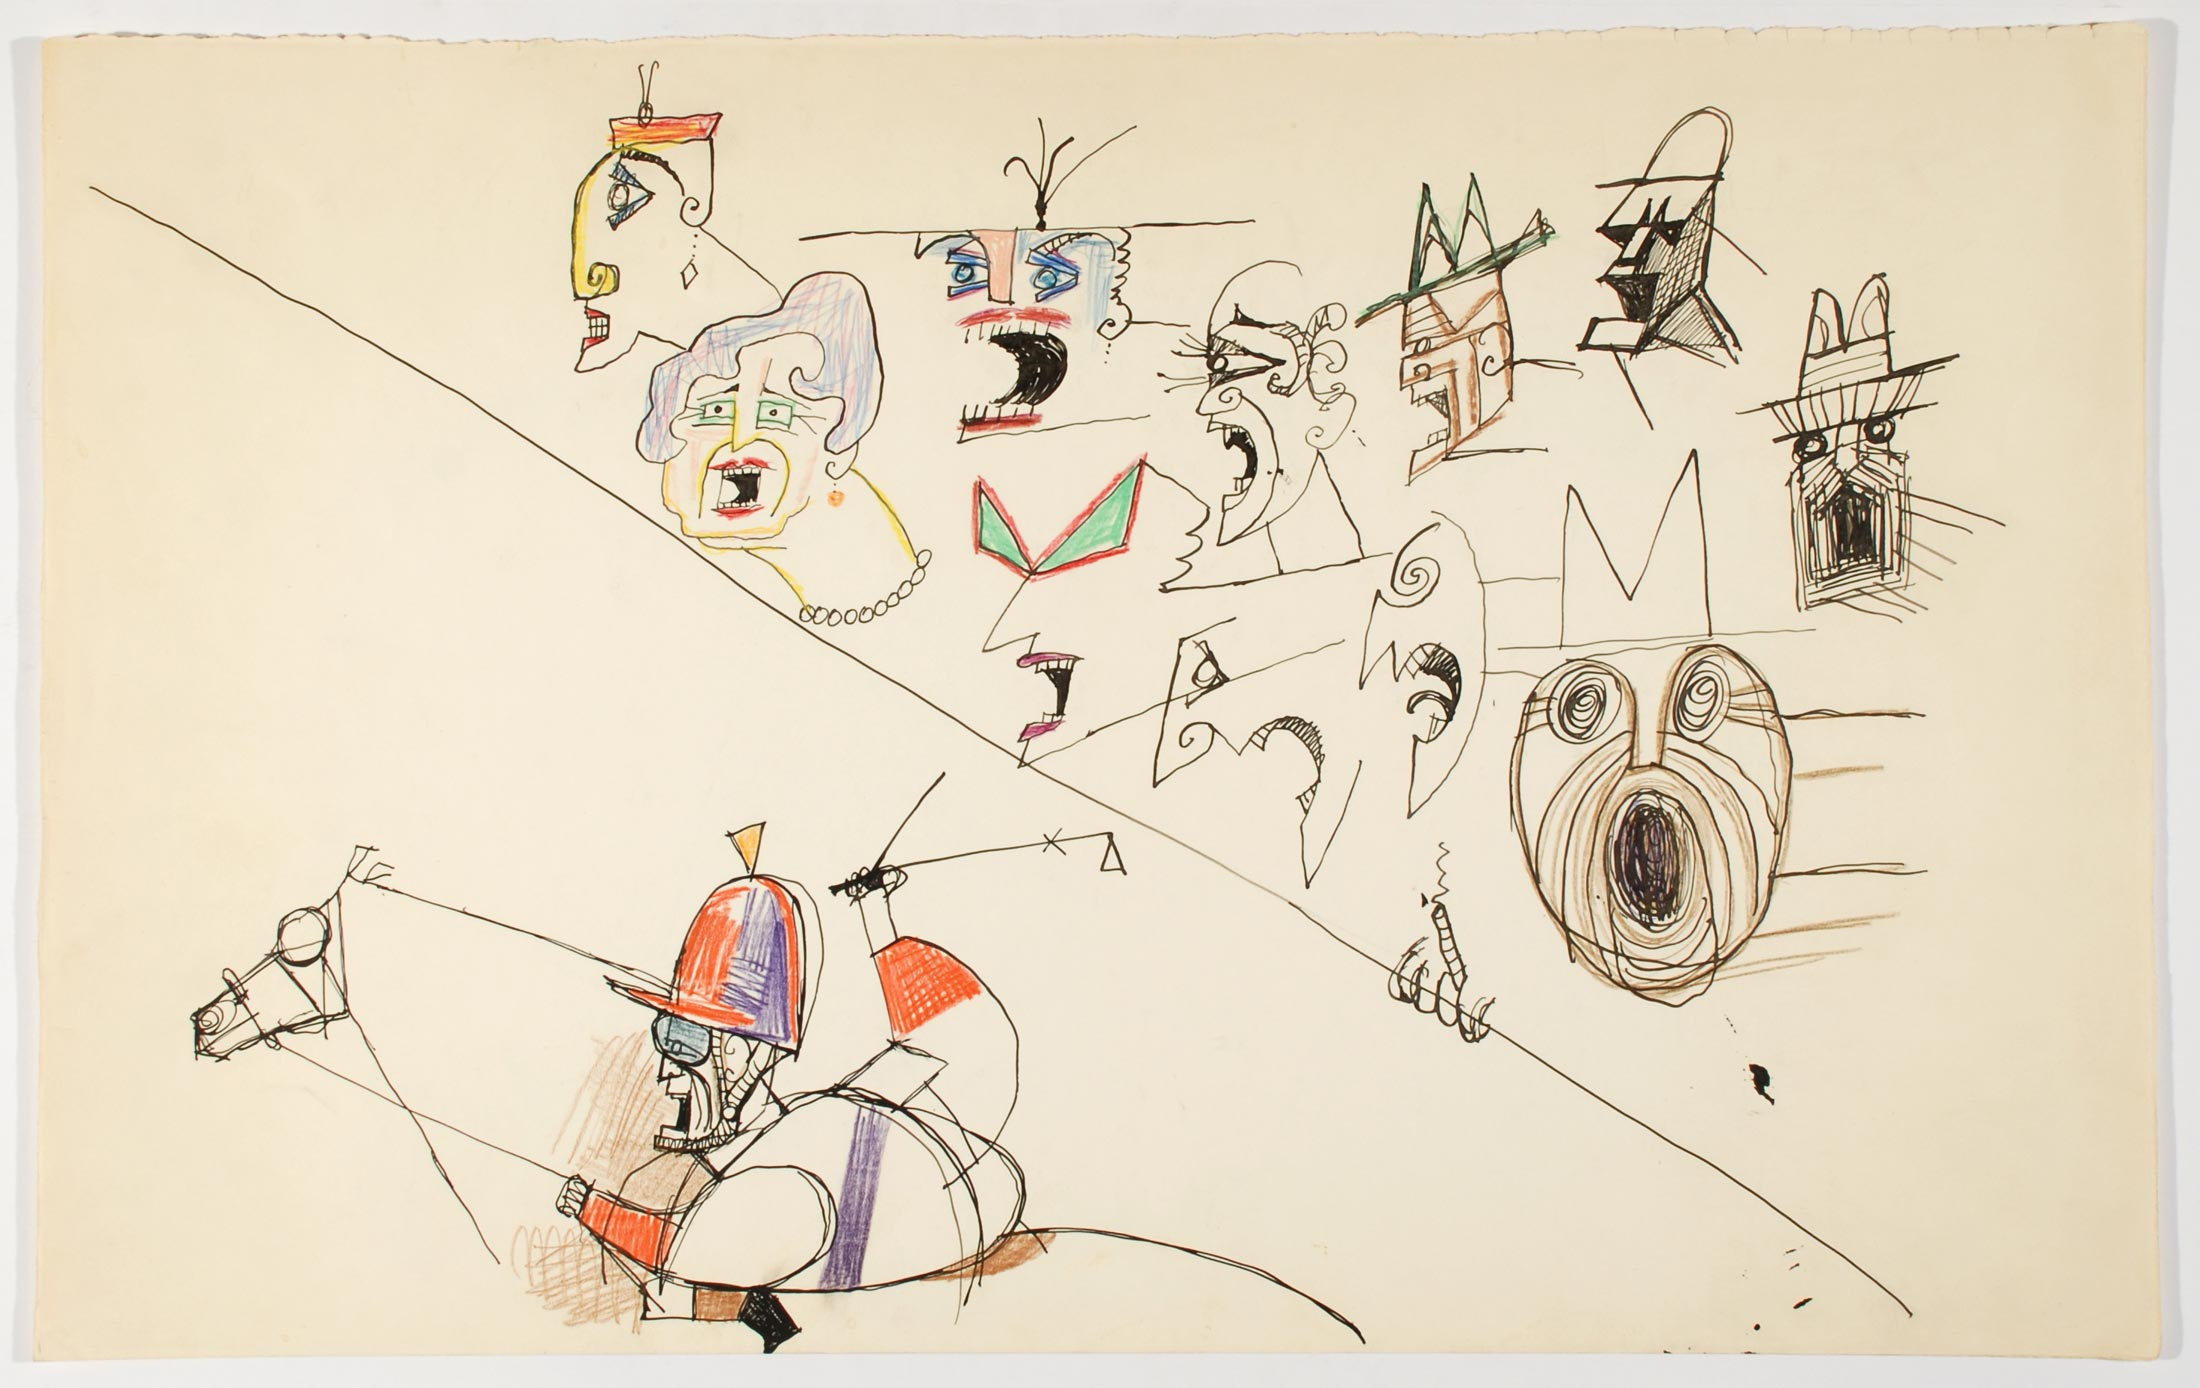 <em>Untitled [At the Racetrack]</em>, c. 1958. Ink and colored pencil on paper, 14 ½ x 23 in. The Saul Steinberg Foundation.